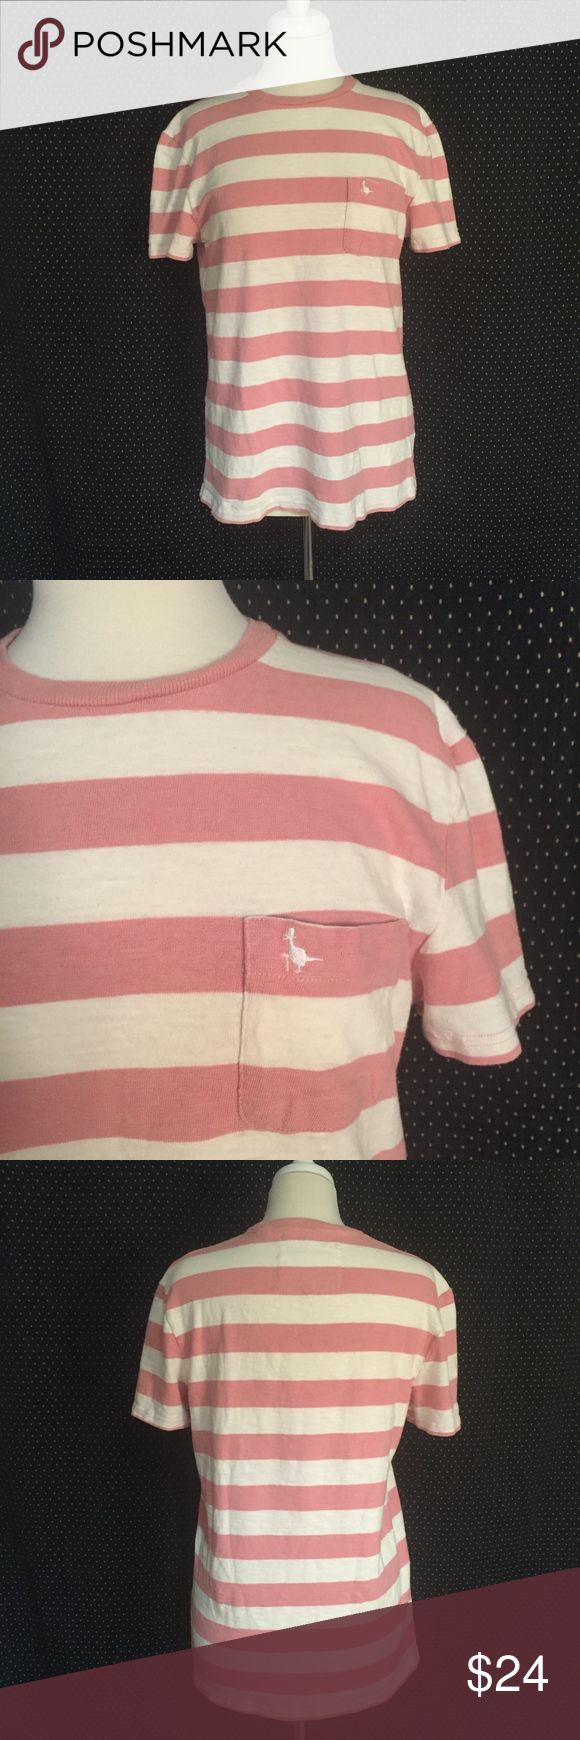 "Jack Wills Cotton T-Shirt Size S Brand: Jack Wills Size: S Description: Raw cotton look pocket T; some wear from washing Condition: Good Fabric: 100% cotton Bust: 40"" Length: 27.5"" Item #1503 Bundle Discount Available! Reasonable offers welcome! No trades please.. Thanks for stopping by!! #Poshmark #Poshmarkapp #Poshmarkcloset Jack Wills Shirts Tees - Short Sleeve"